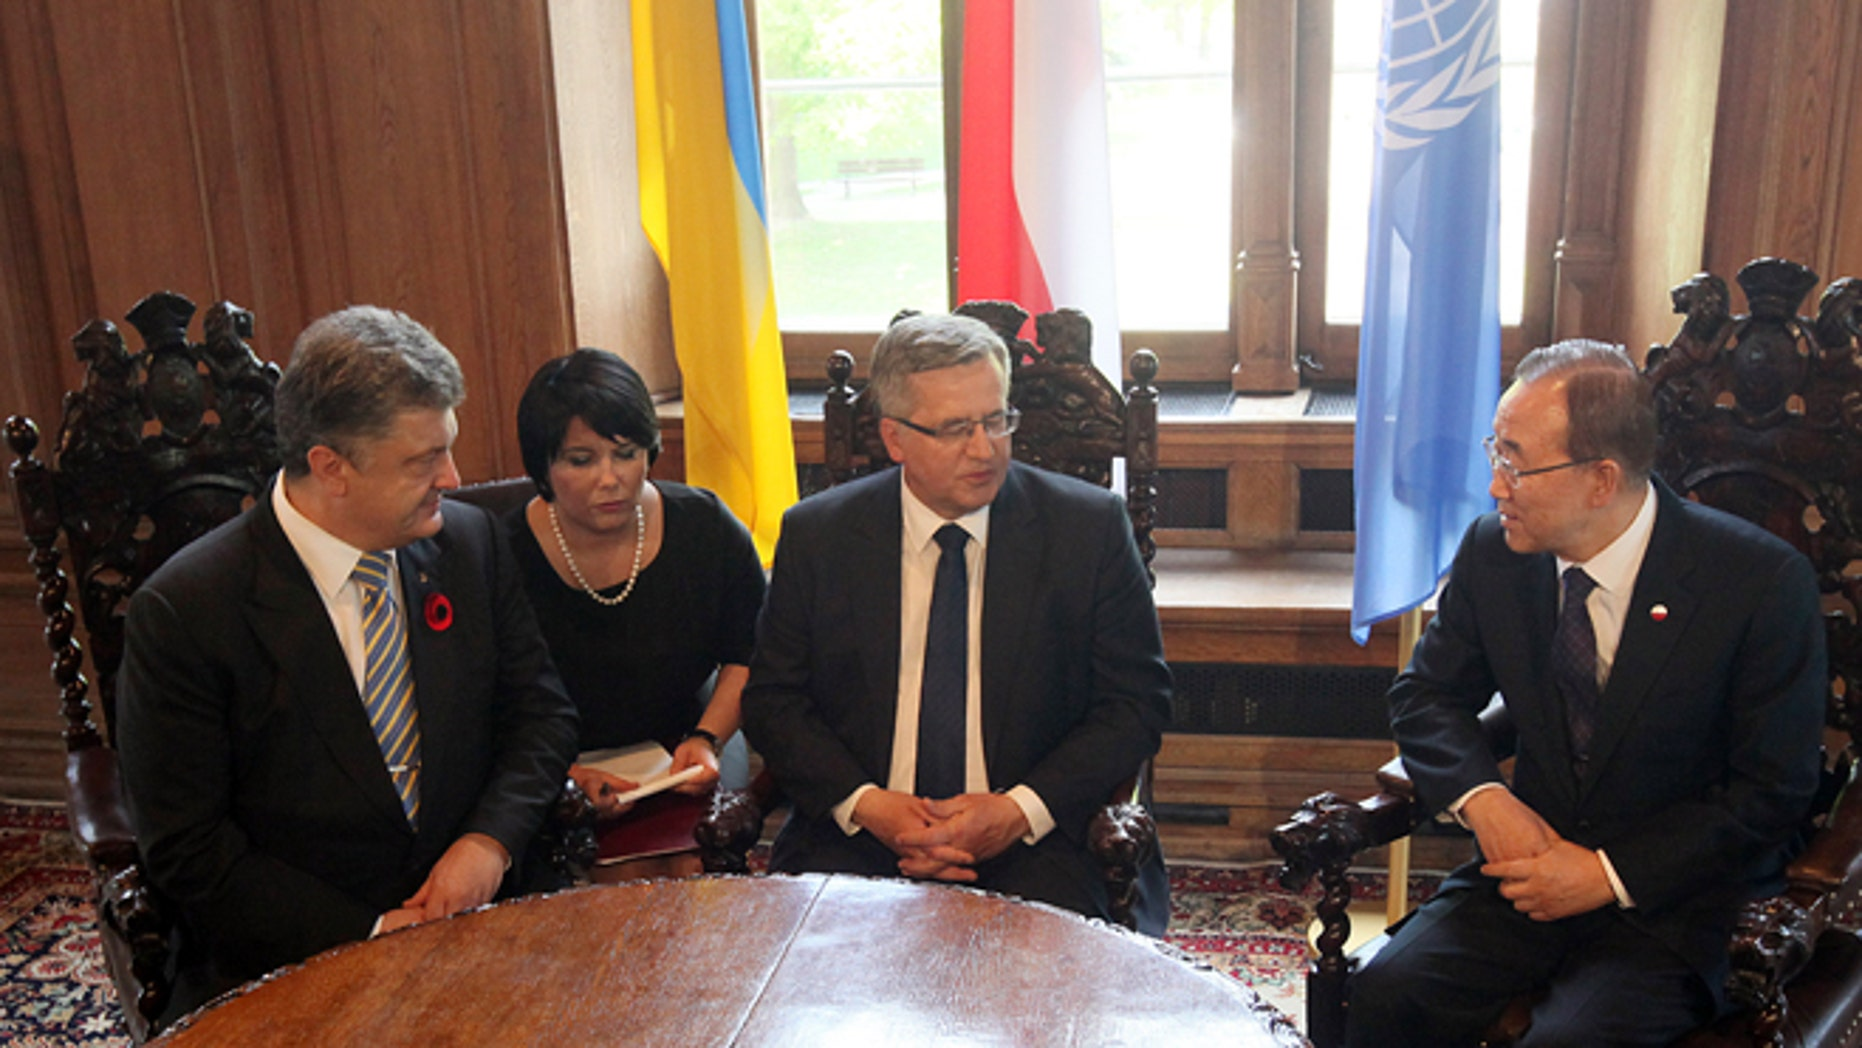 May 7, 2015: Poland's President Bronislaw Komorowski, center, meets U.N. Secretary General Ban Ki-moon, right, and Ukraines President, Petro Poroshenko, left, at the City Hall in Gdansk, Poland, shortly before ceremonies he organized to mark 70 years of the end of World War II that began with Nazi Germanys attack on Poland in 1939.